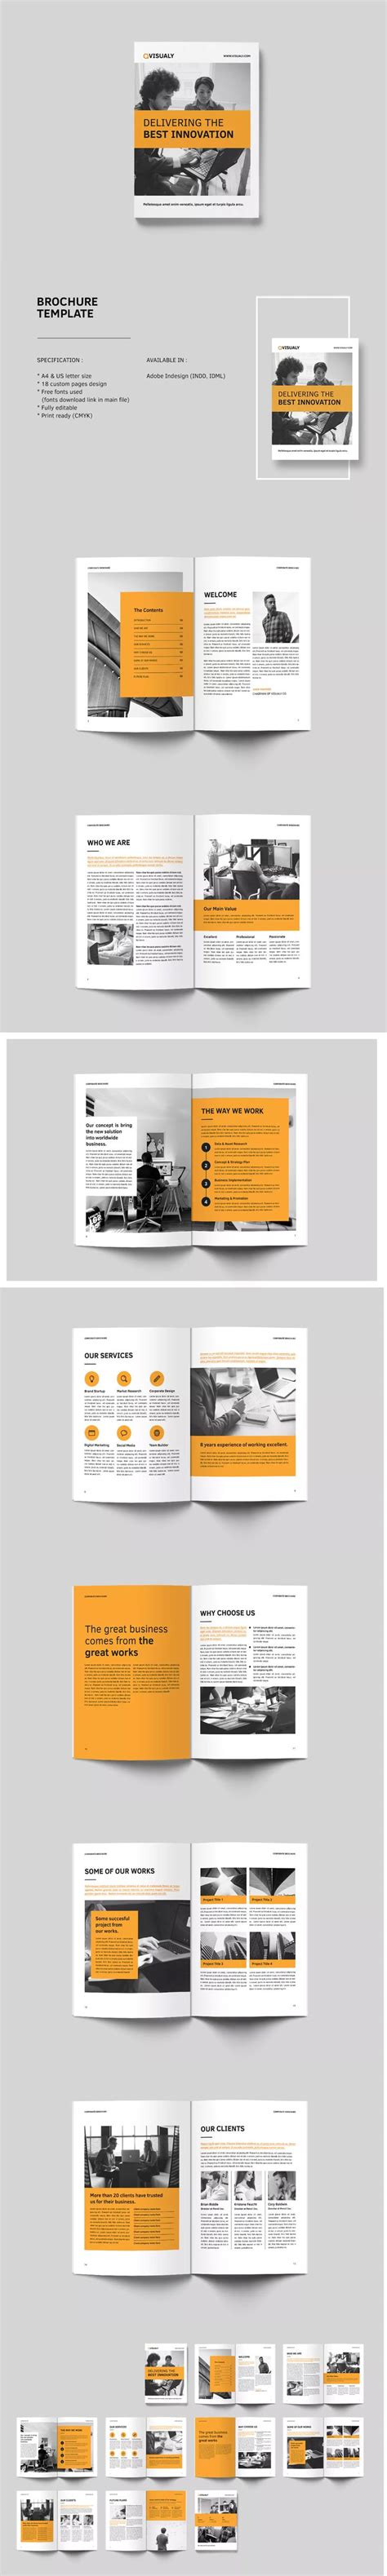 Indesign Business Card Template A4 by 517 Best Brochure Templates Images On